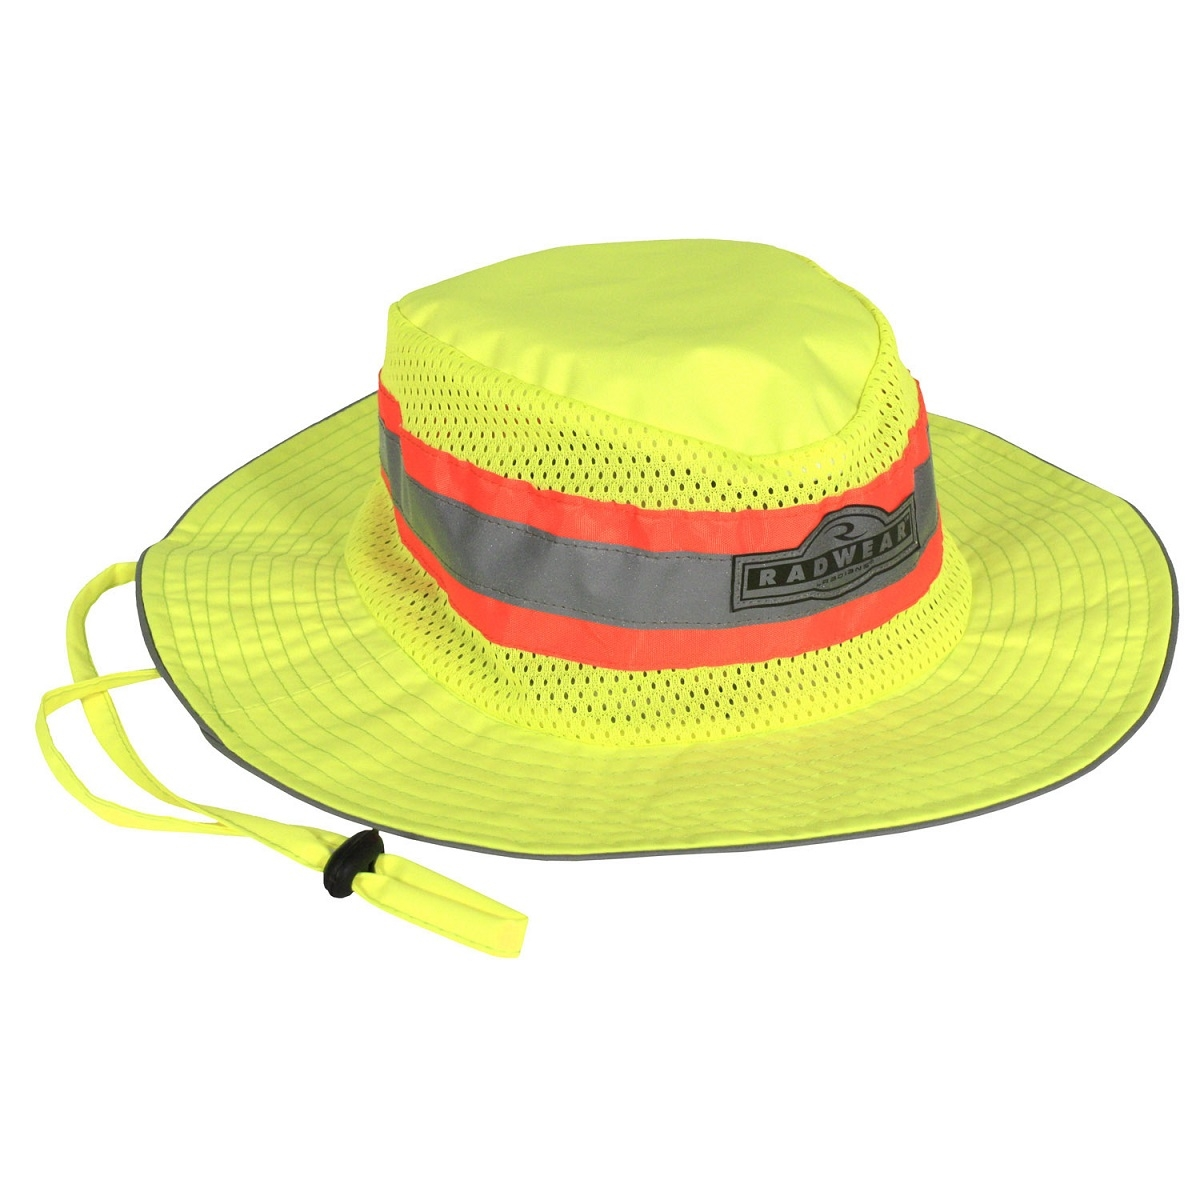 2abee8fc Radians SHG Hi-Viz Safari Hat with Logo - Yellow/Lime | FullSource.com